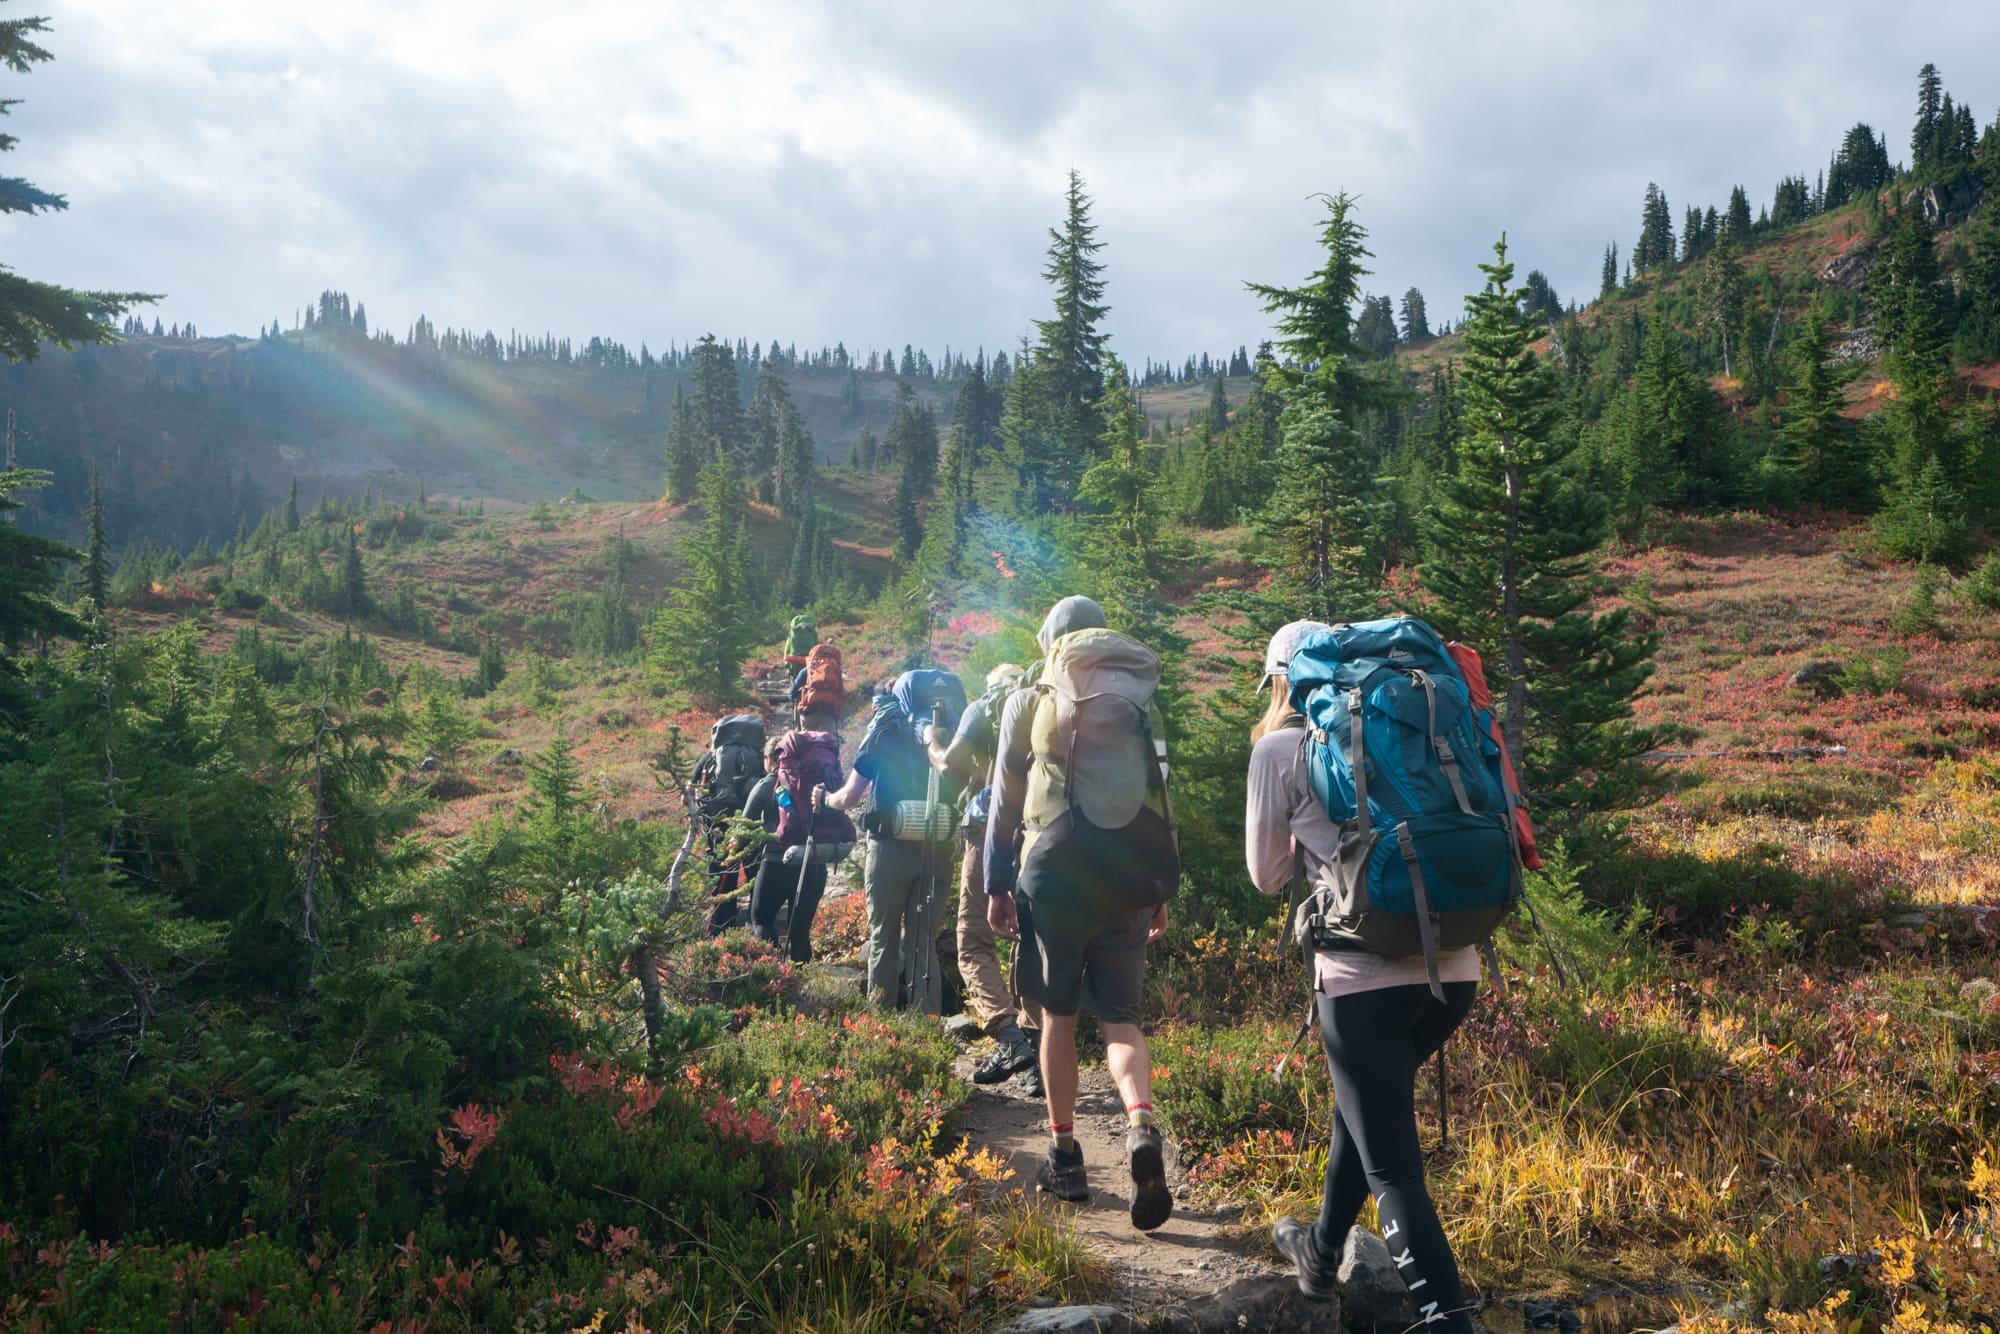 Learn how to pack a backpacking pack for maximum comfort and organization with these pros tips for fitting all of your gear and balancing the load.